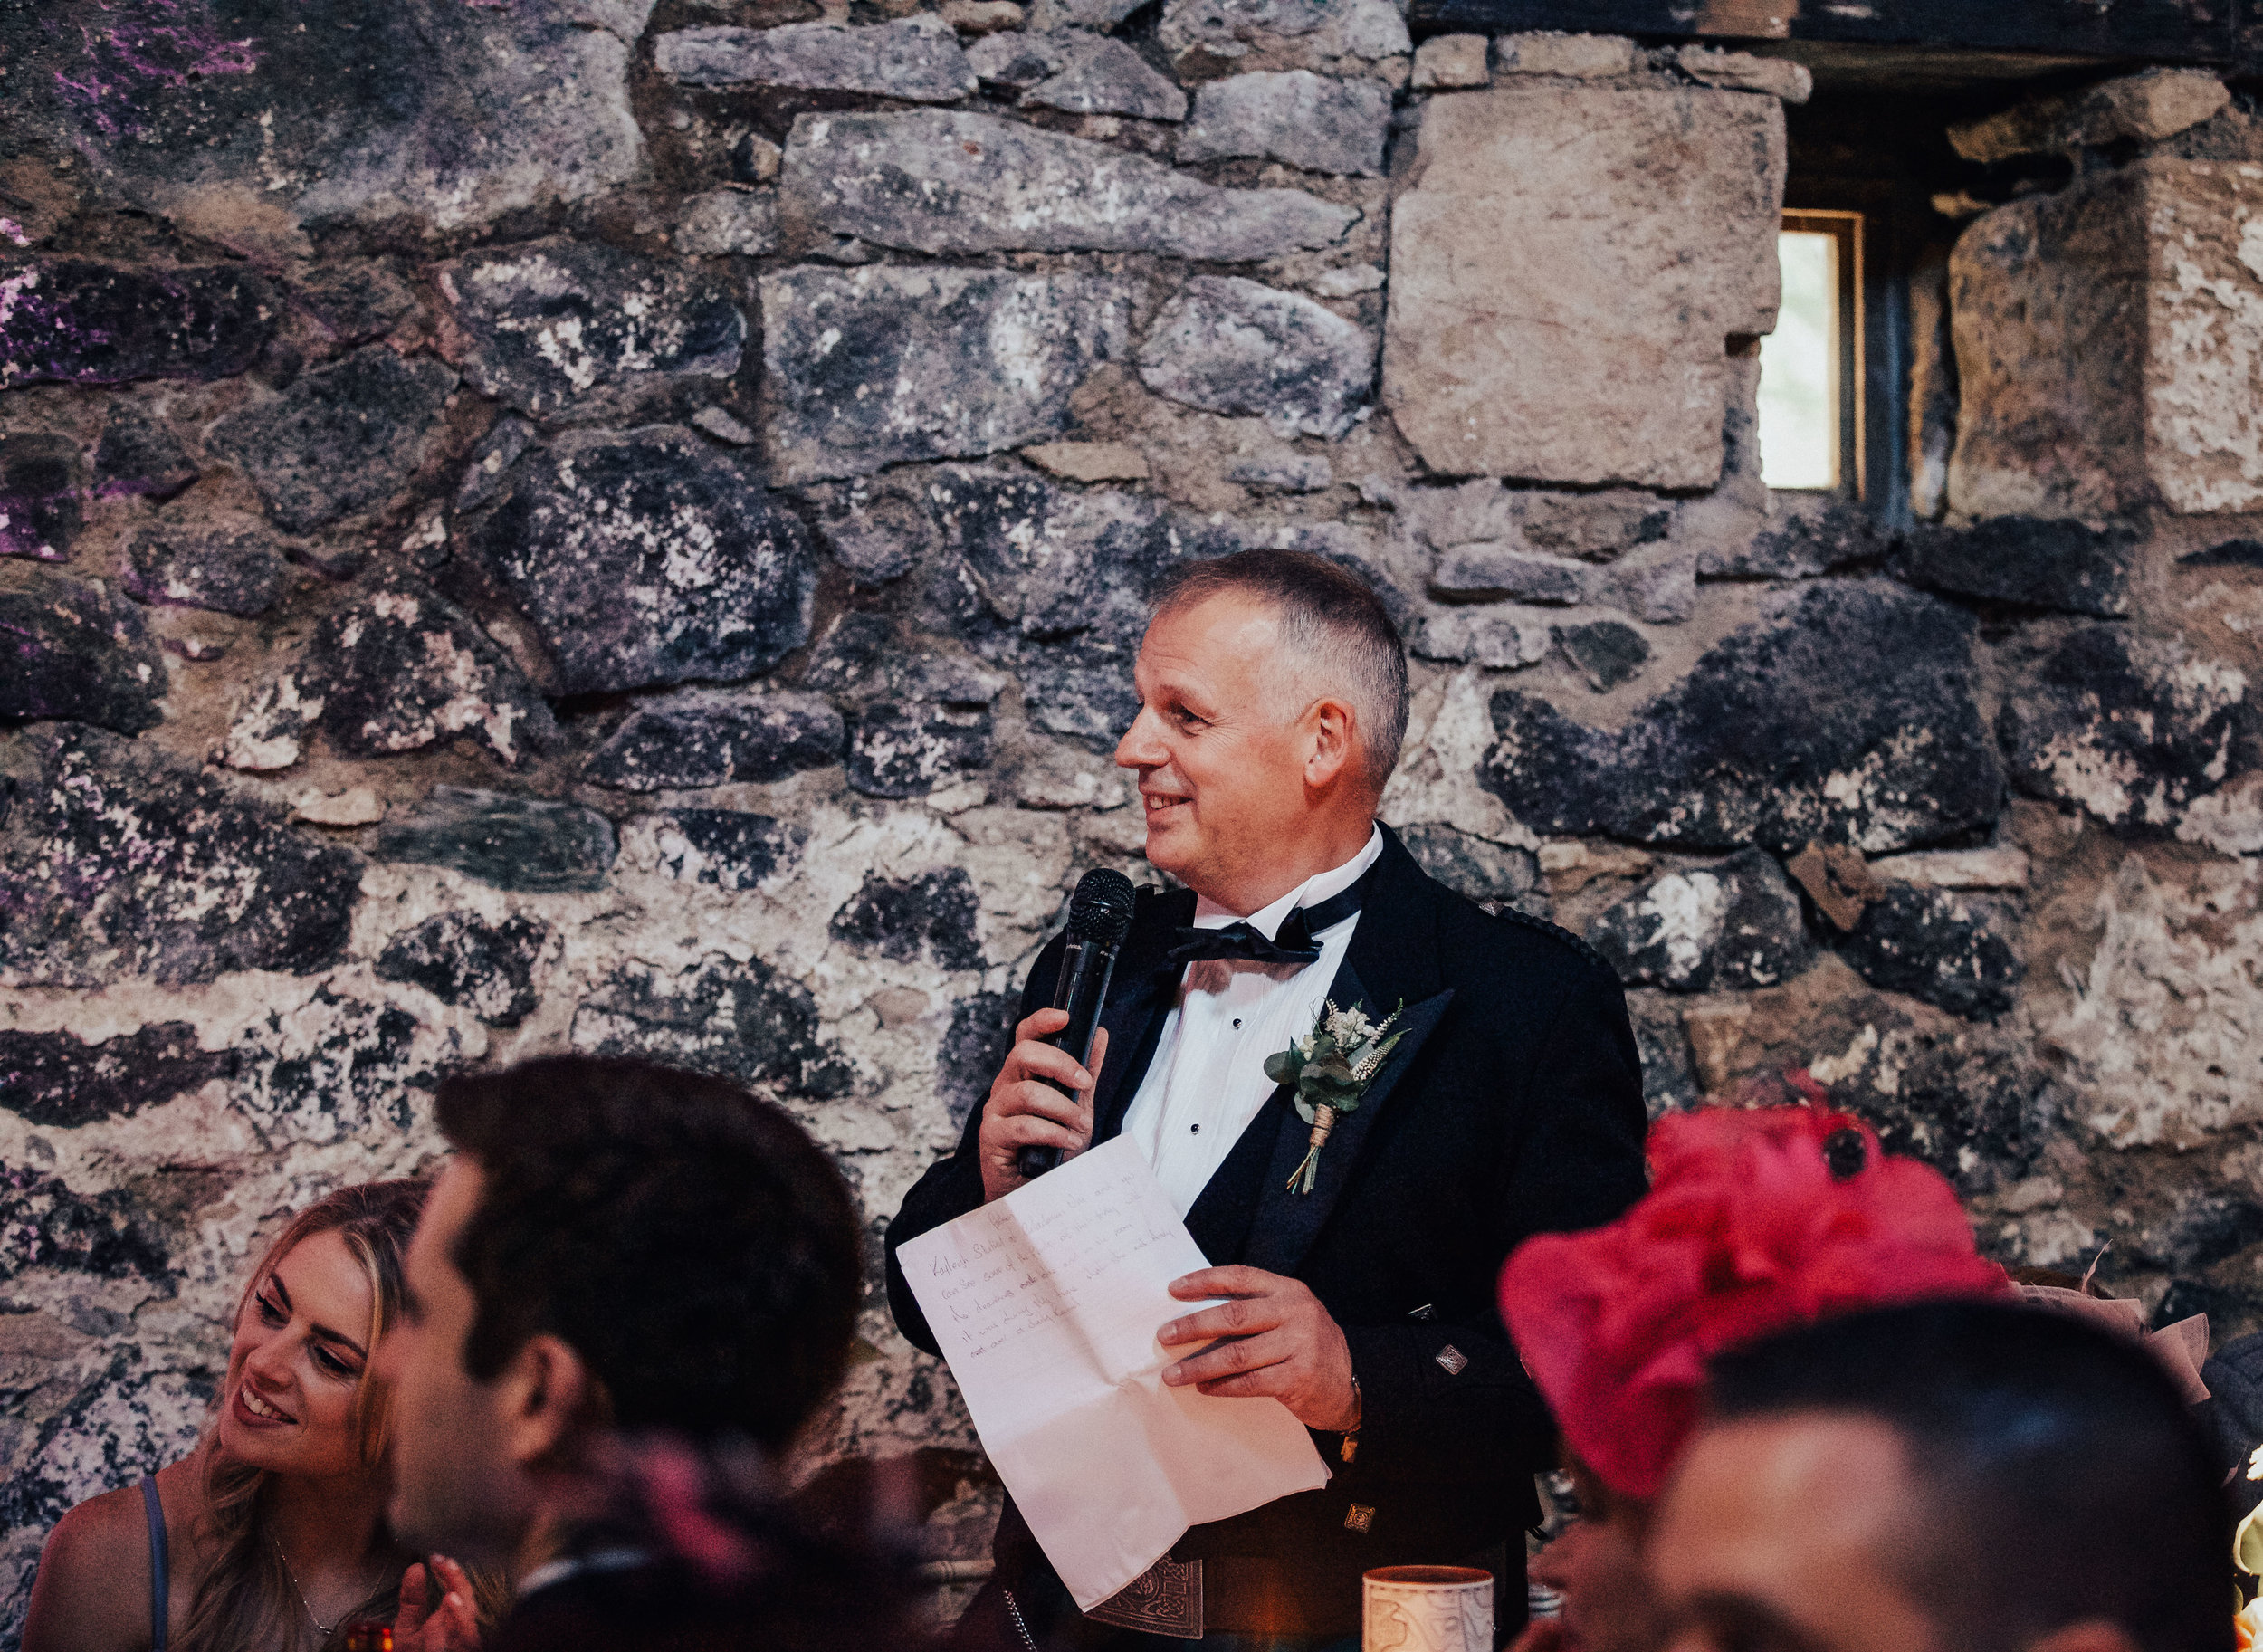 BYRE_AT_INCHYRA_WEDDING_PHOTOGRAPHER_PJ_PHILLIPS_PHOTOGRAPHY_KAYLEIGH_ANDREW_136.jpg